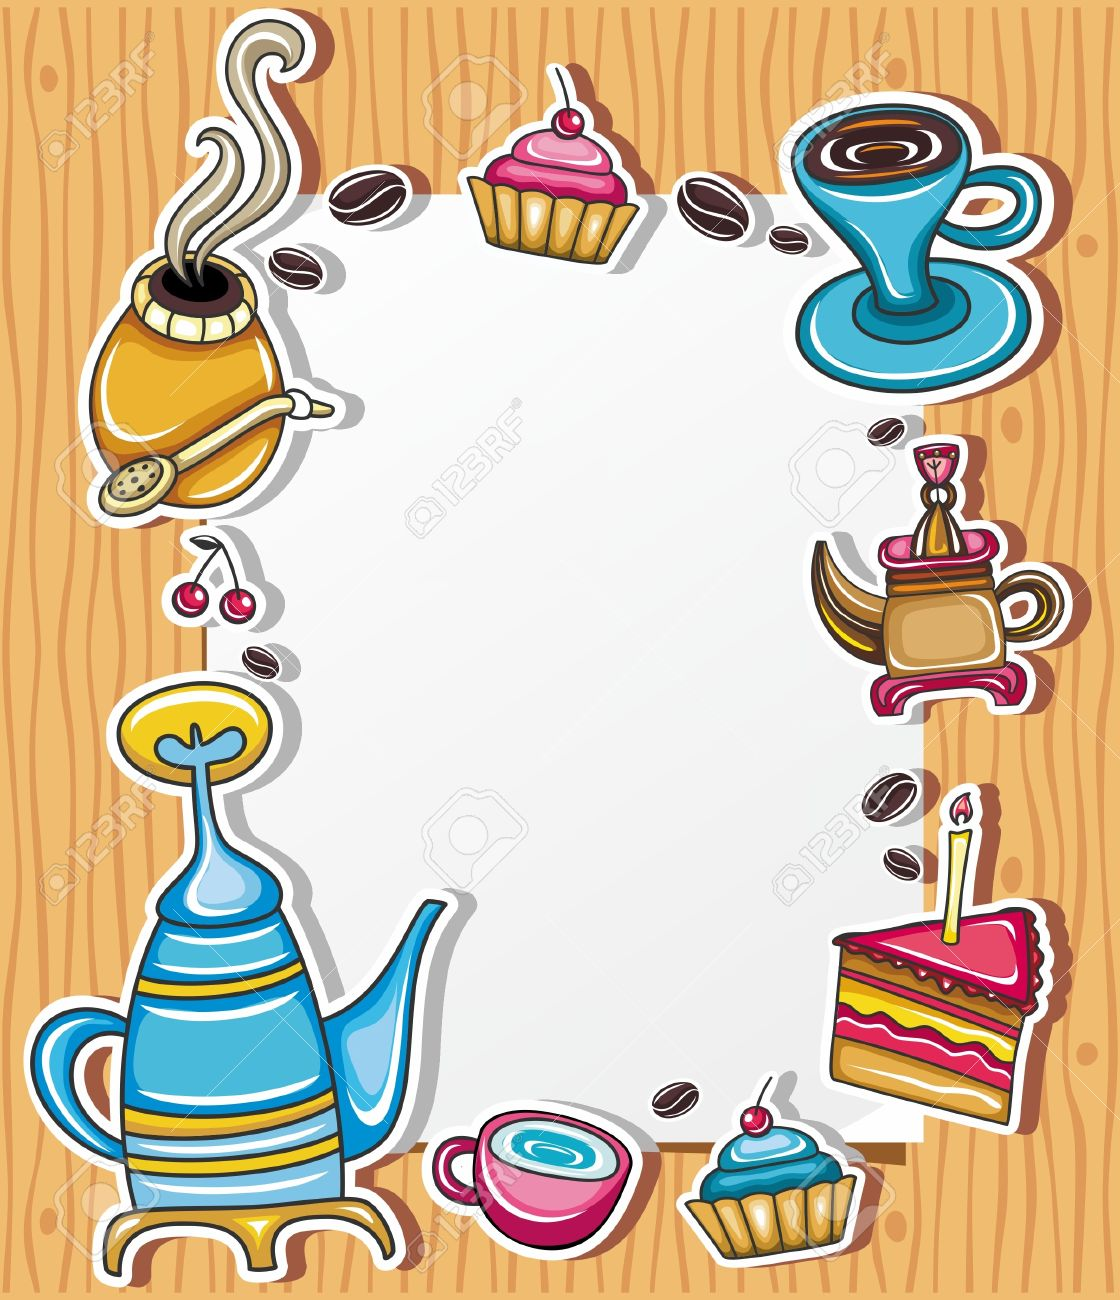 Cute Grunge Frame With Coffee, Tea, Cake, Yerba Mate Symbol.